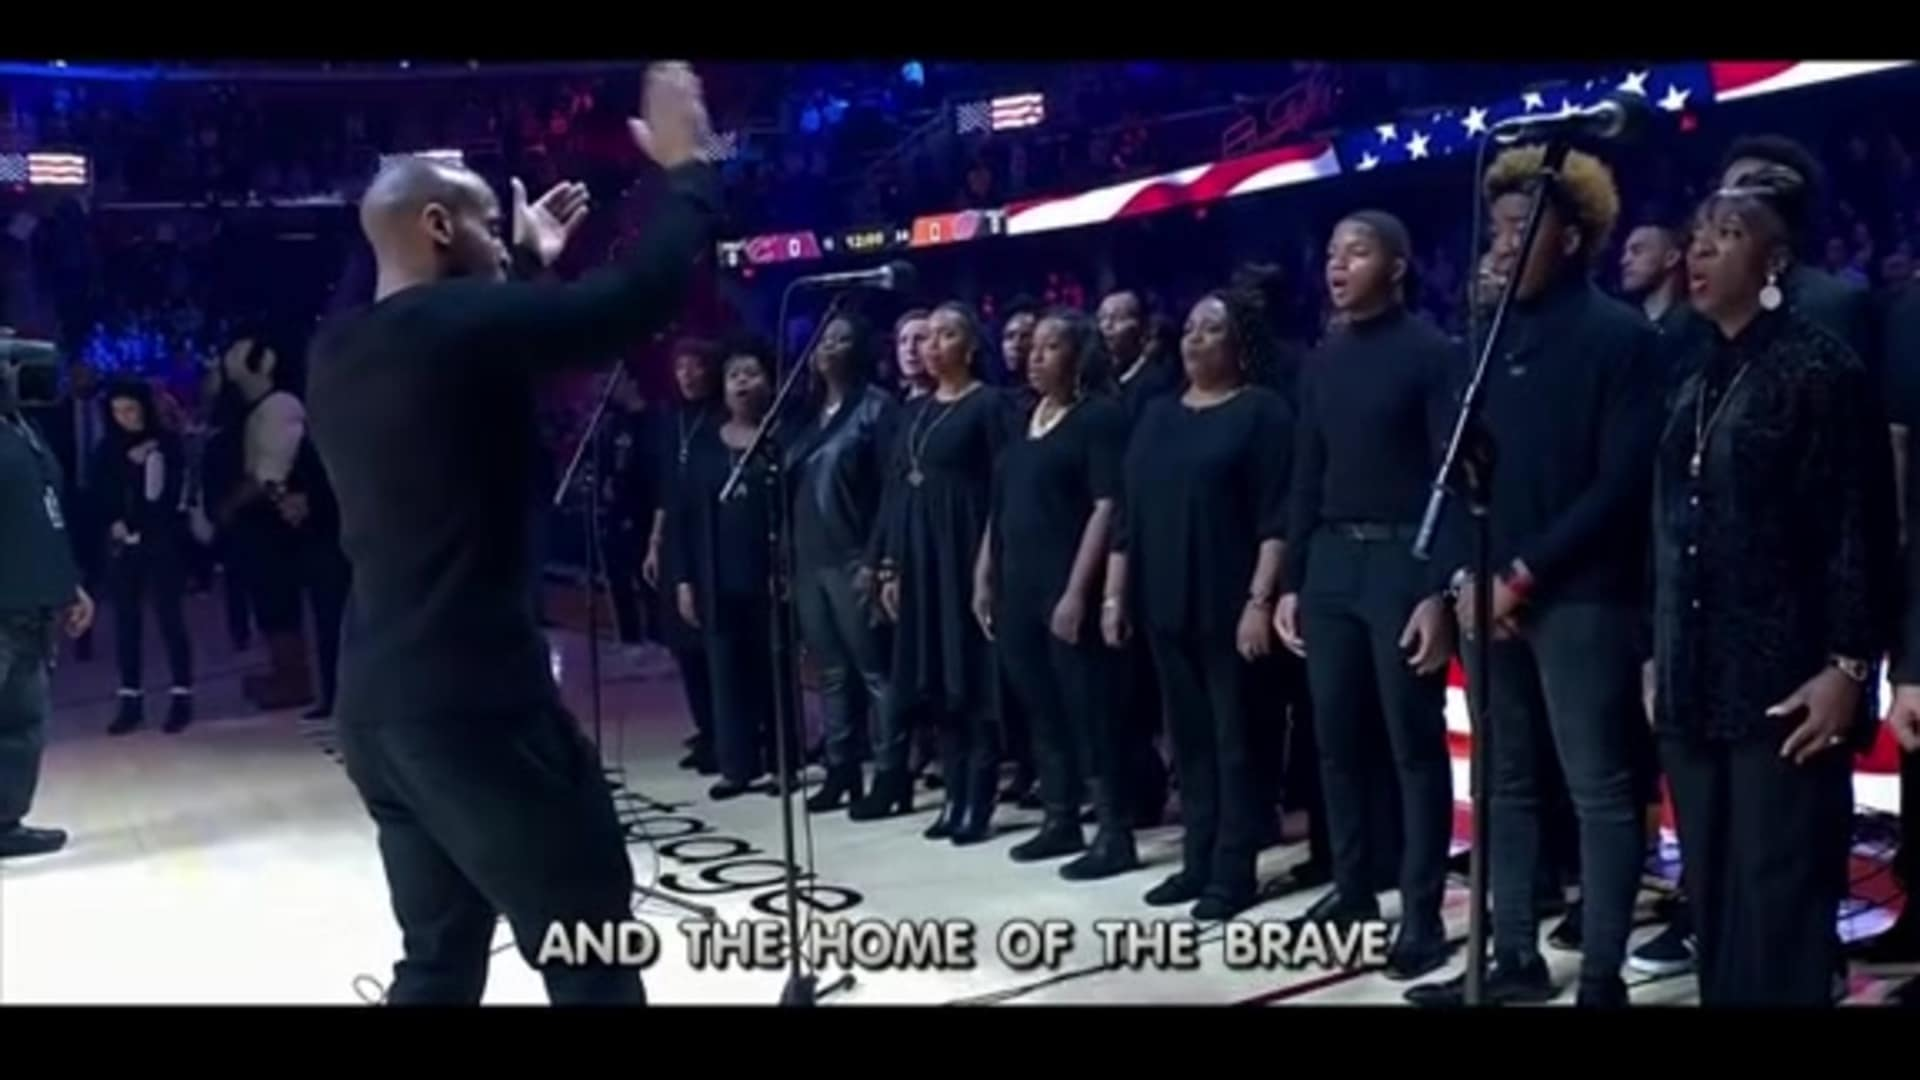 The Word Church Choir Performs Ahead of Monday's Game on MLK Day